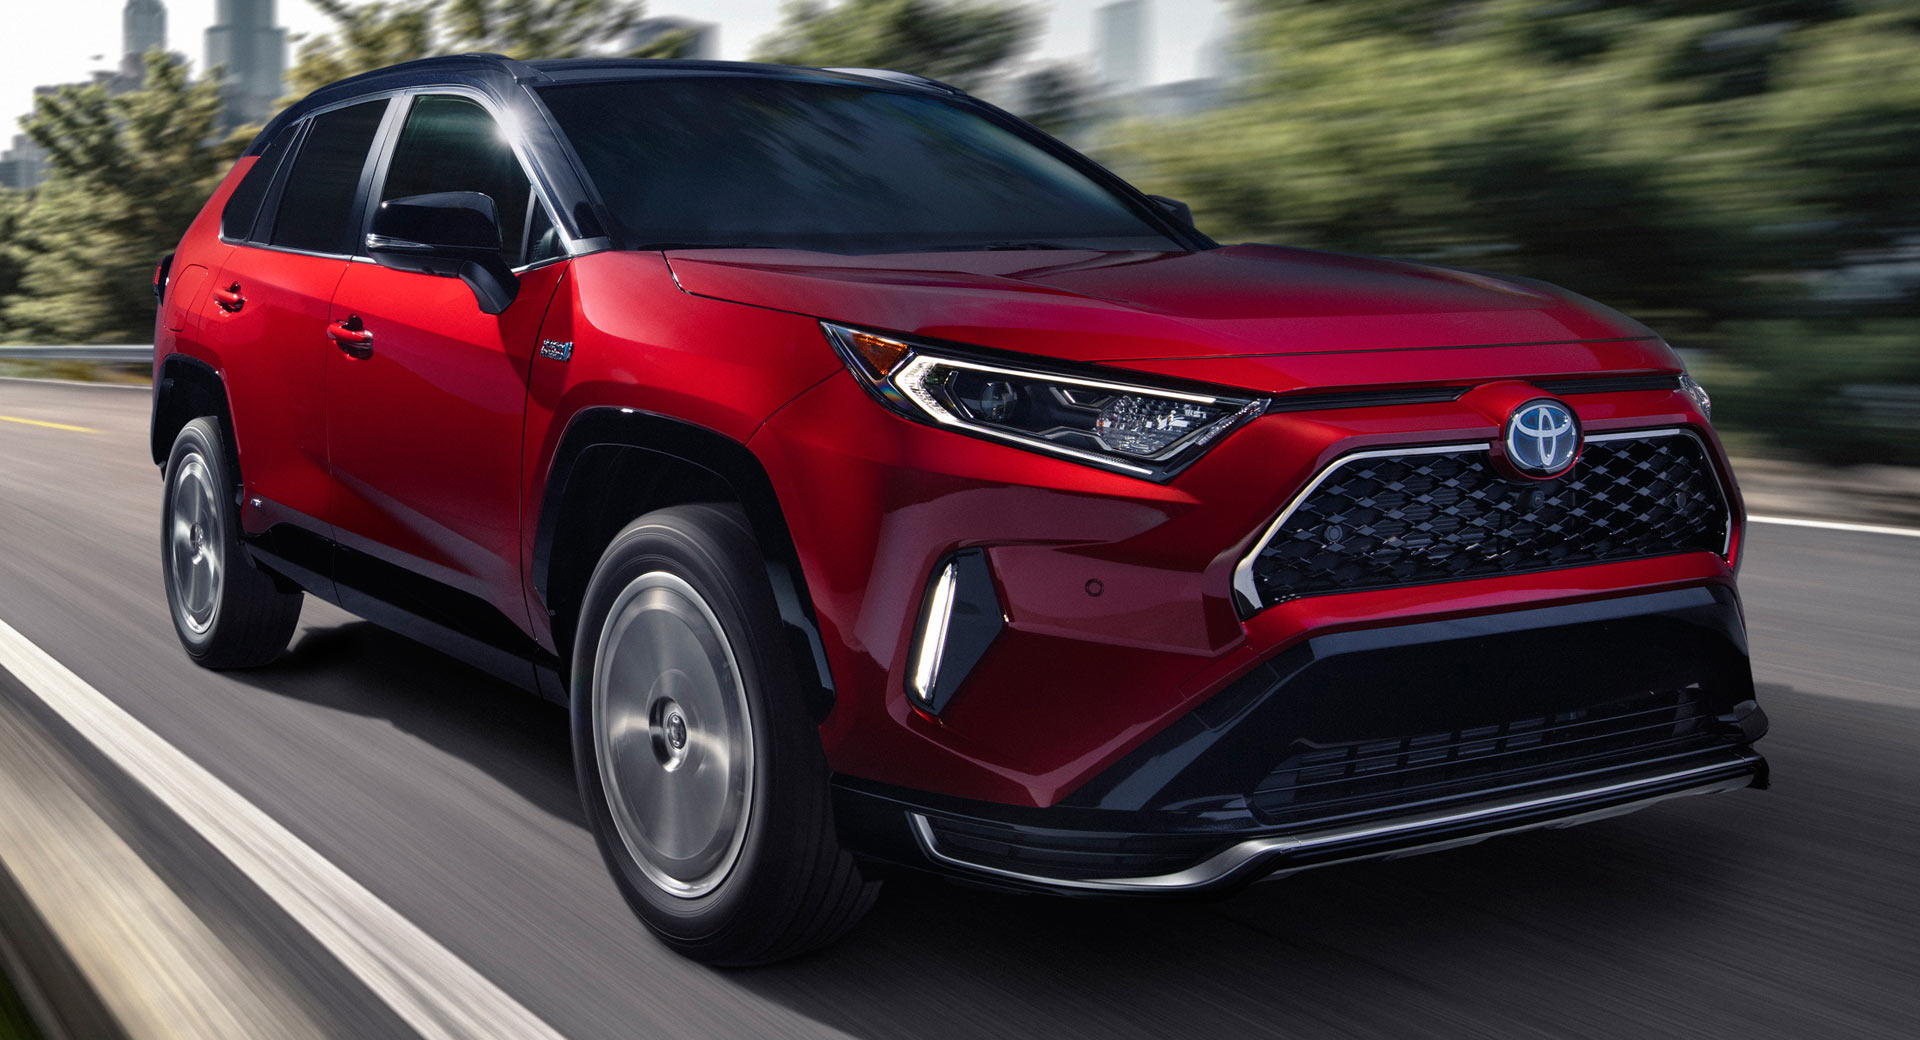 2021 Toyota Rav4 Prime Phev Is Both The Most Powerful And Fuel Efficient Rav4 Ever Carscoops